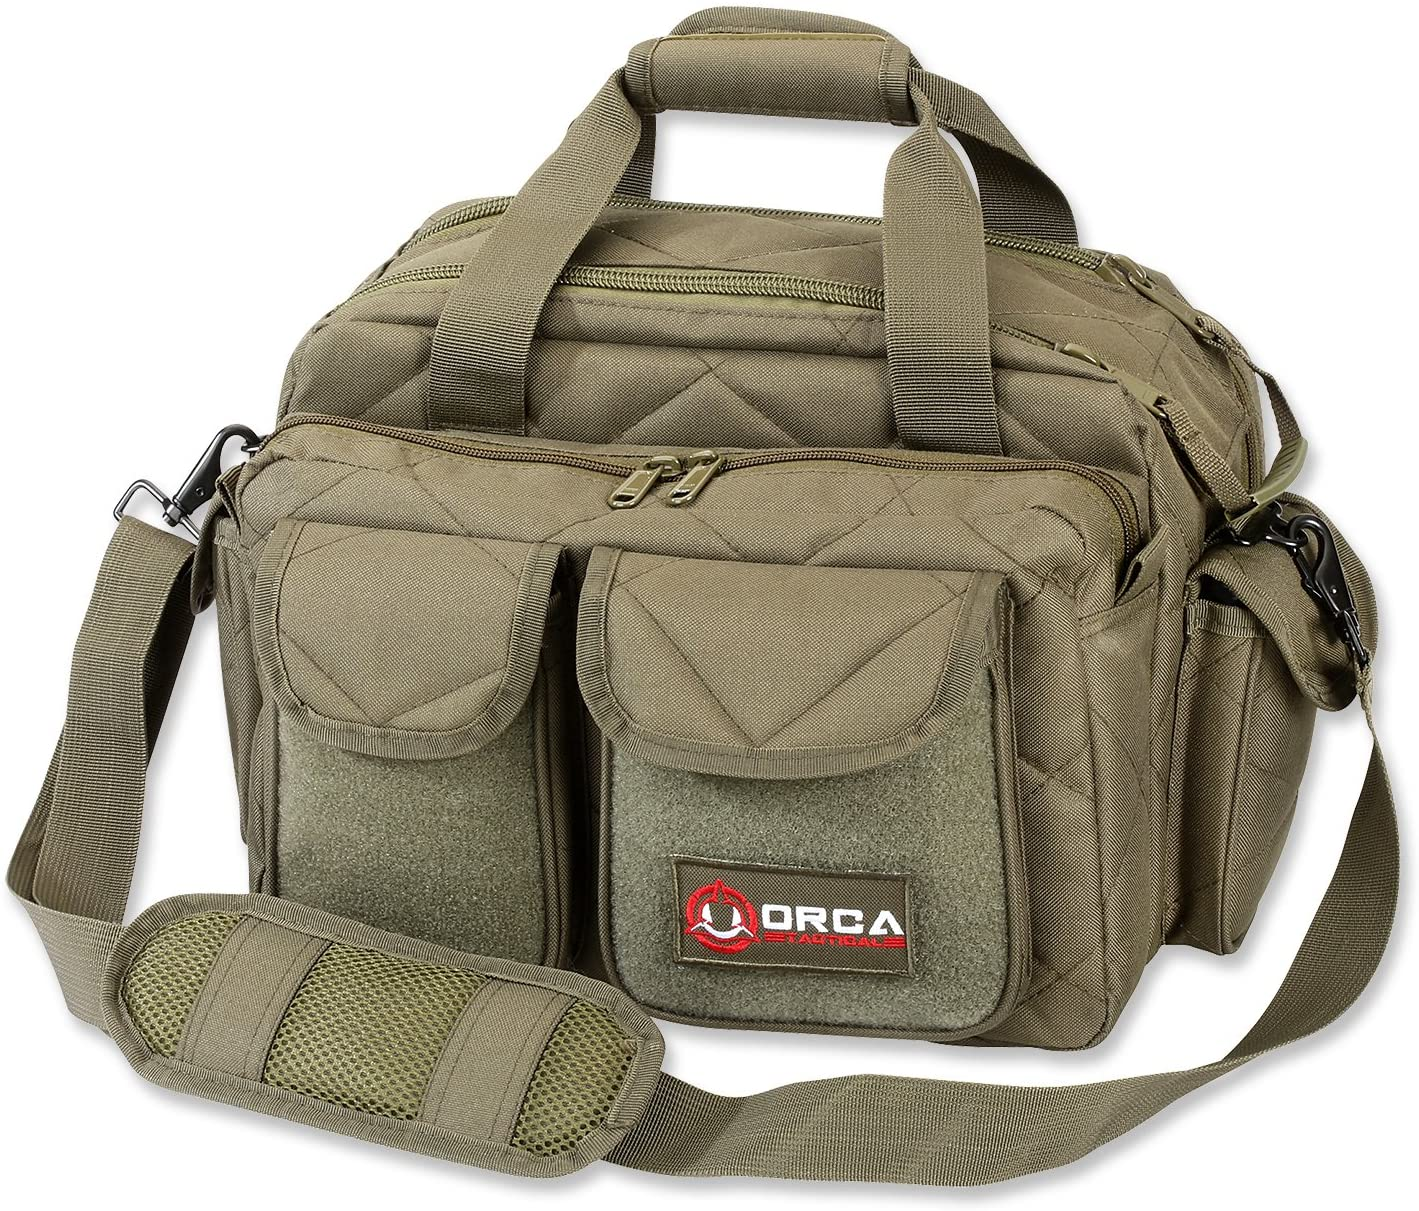 Orca Tactical Gun Range Bag for Handguns, Pistols and Ammo - Duffle Carrier Stores and Protects 3+ Firearms Safely - Transport Shooting Range Equipment - Designed for 2020